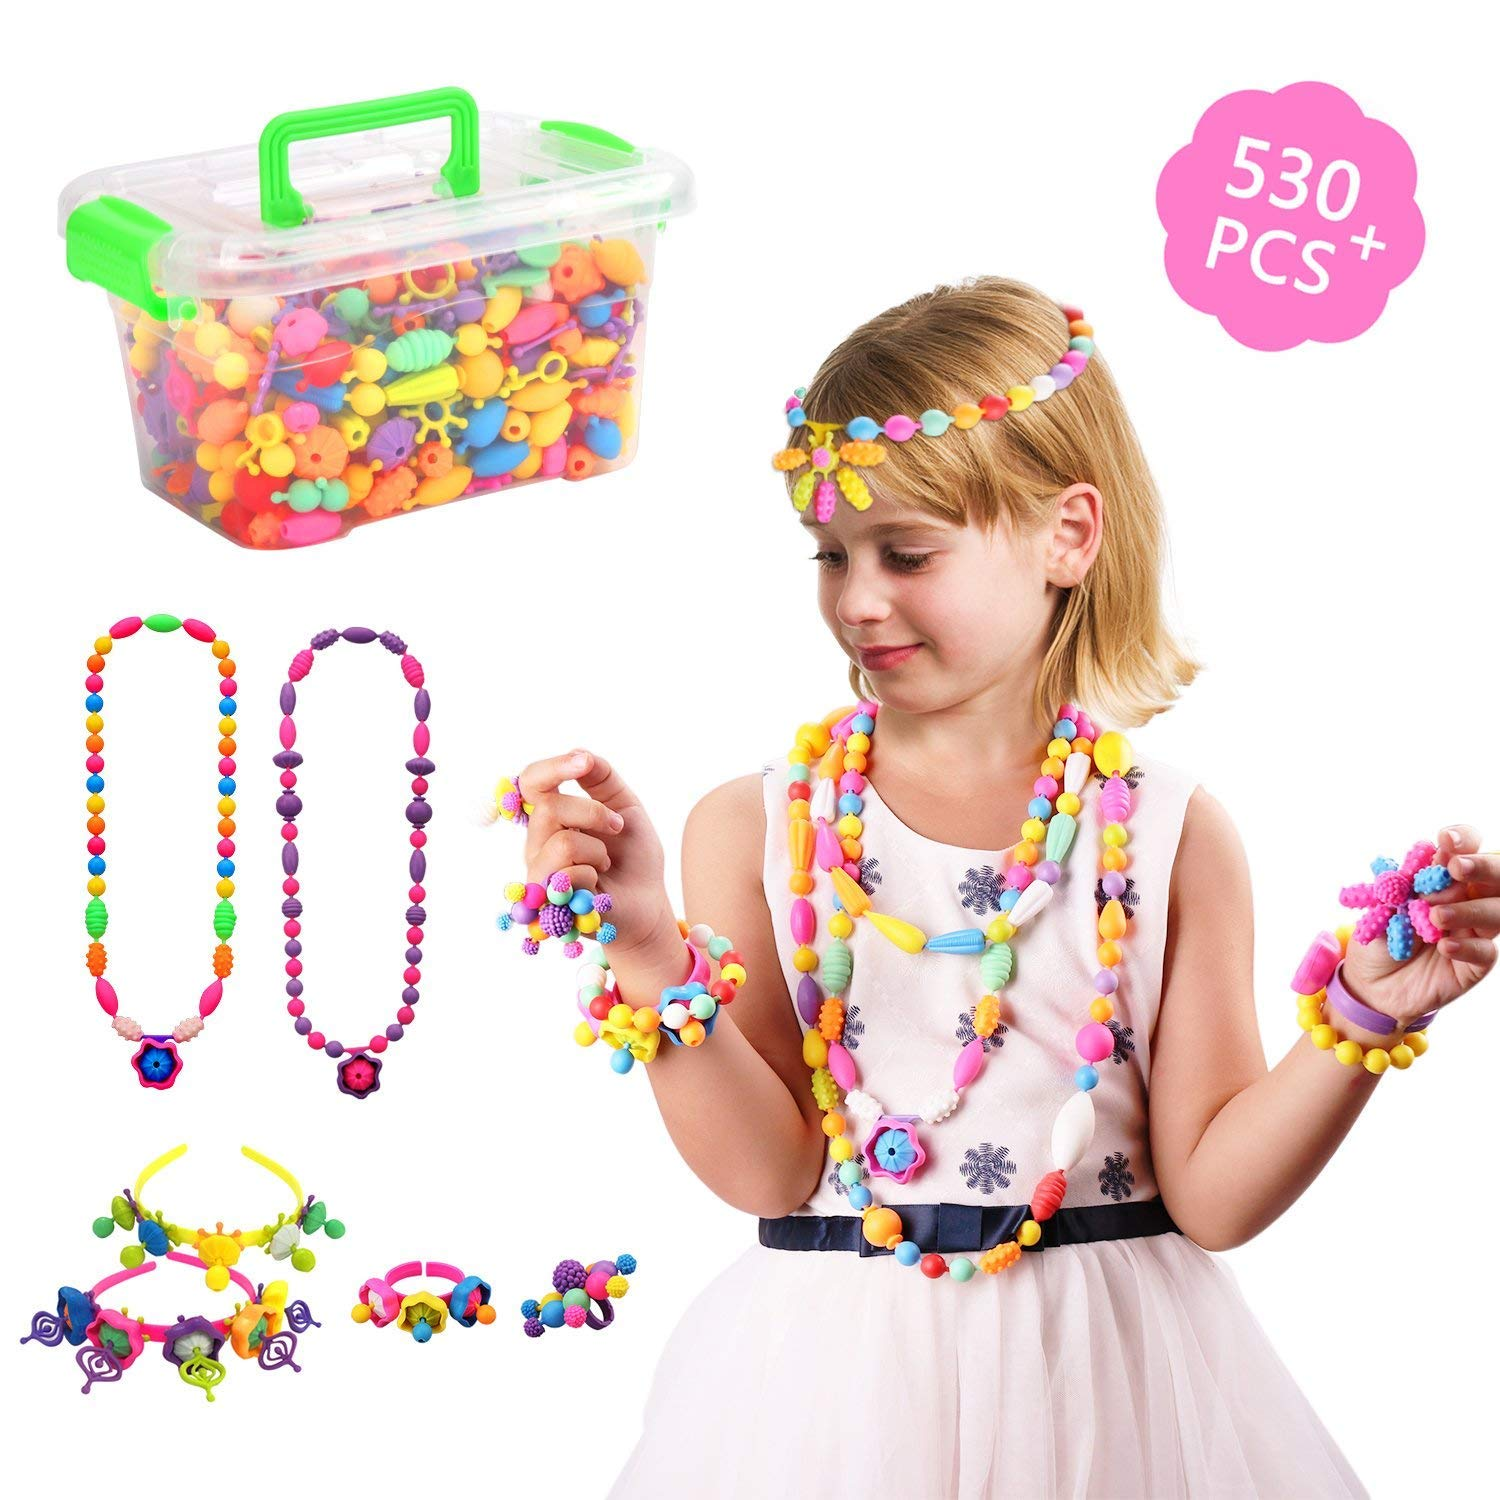 Inseacat Pop Snap Beads, Beauty Crafts Toys Jewelry Making Kit for 4,5,6,7 Year Old Girls Toddlers - Necklace, Bracelet and Ring Creativity DIY Set - Ideal Birthday & Educational Gifts (530 PCS)